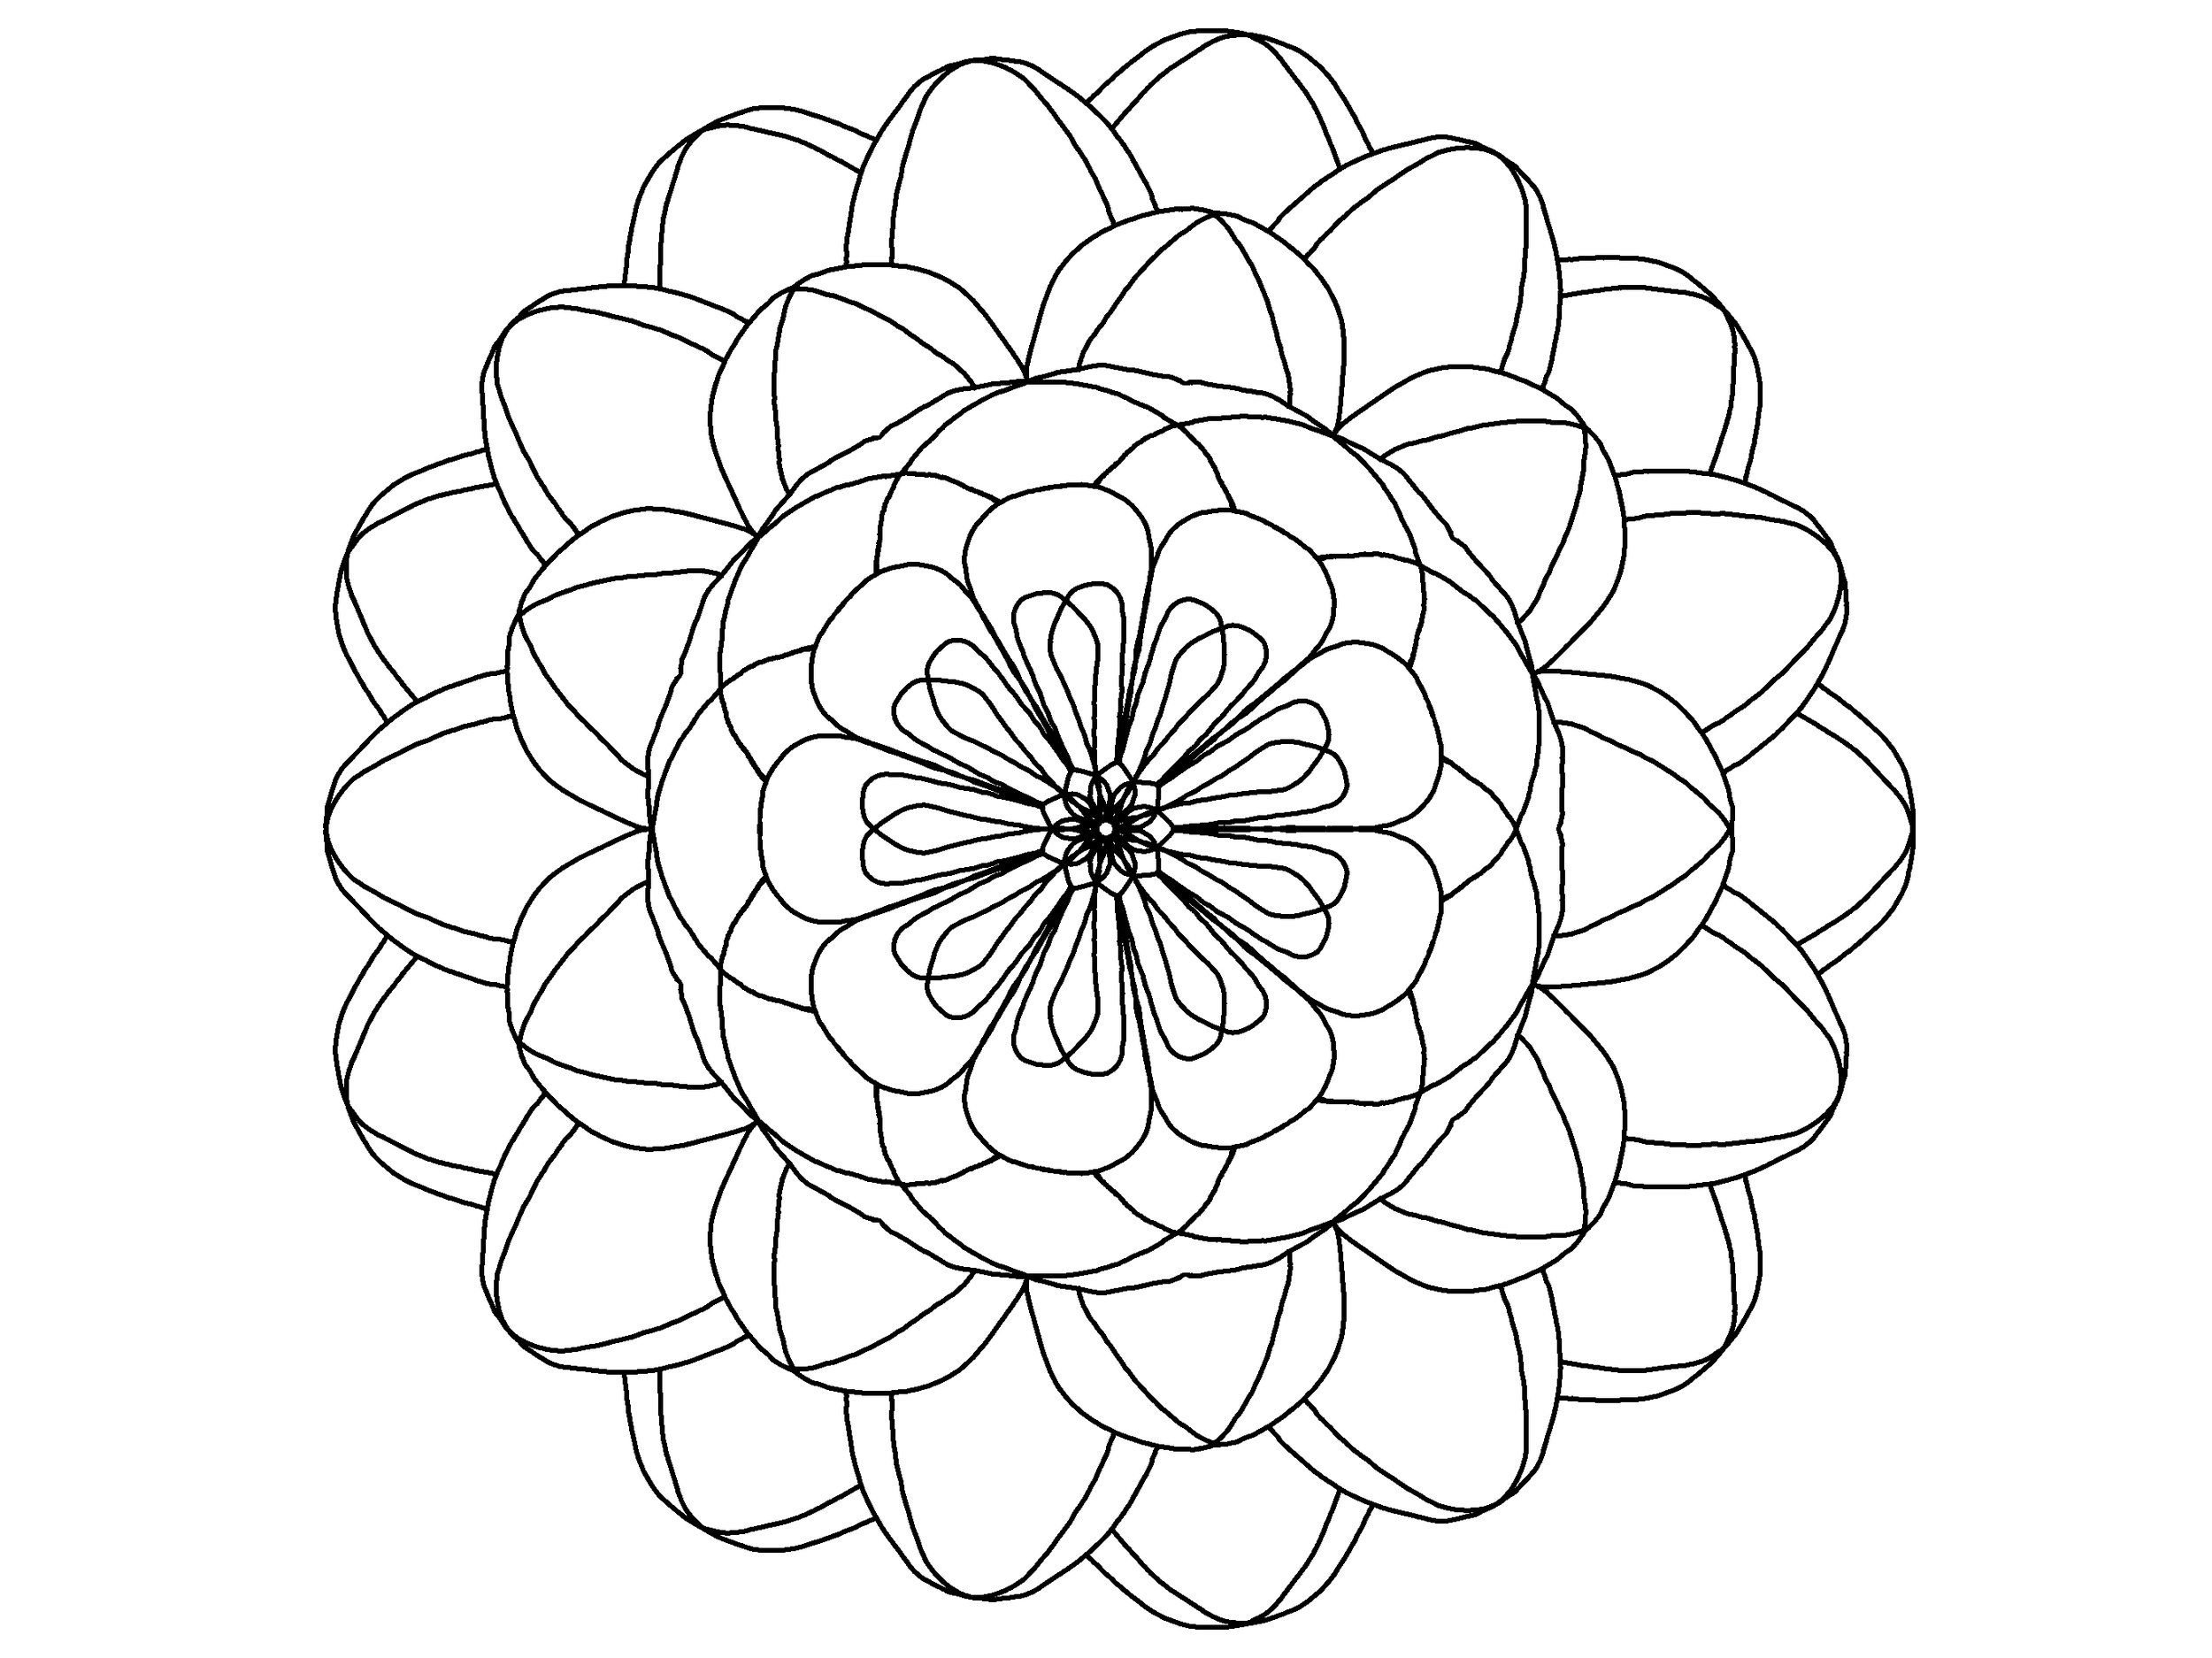 Meditative Coloring Pages | Adult Coloring | the lost | san diego ...